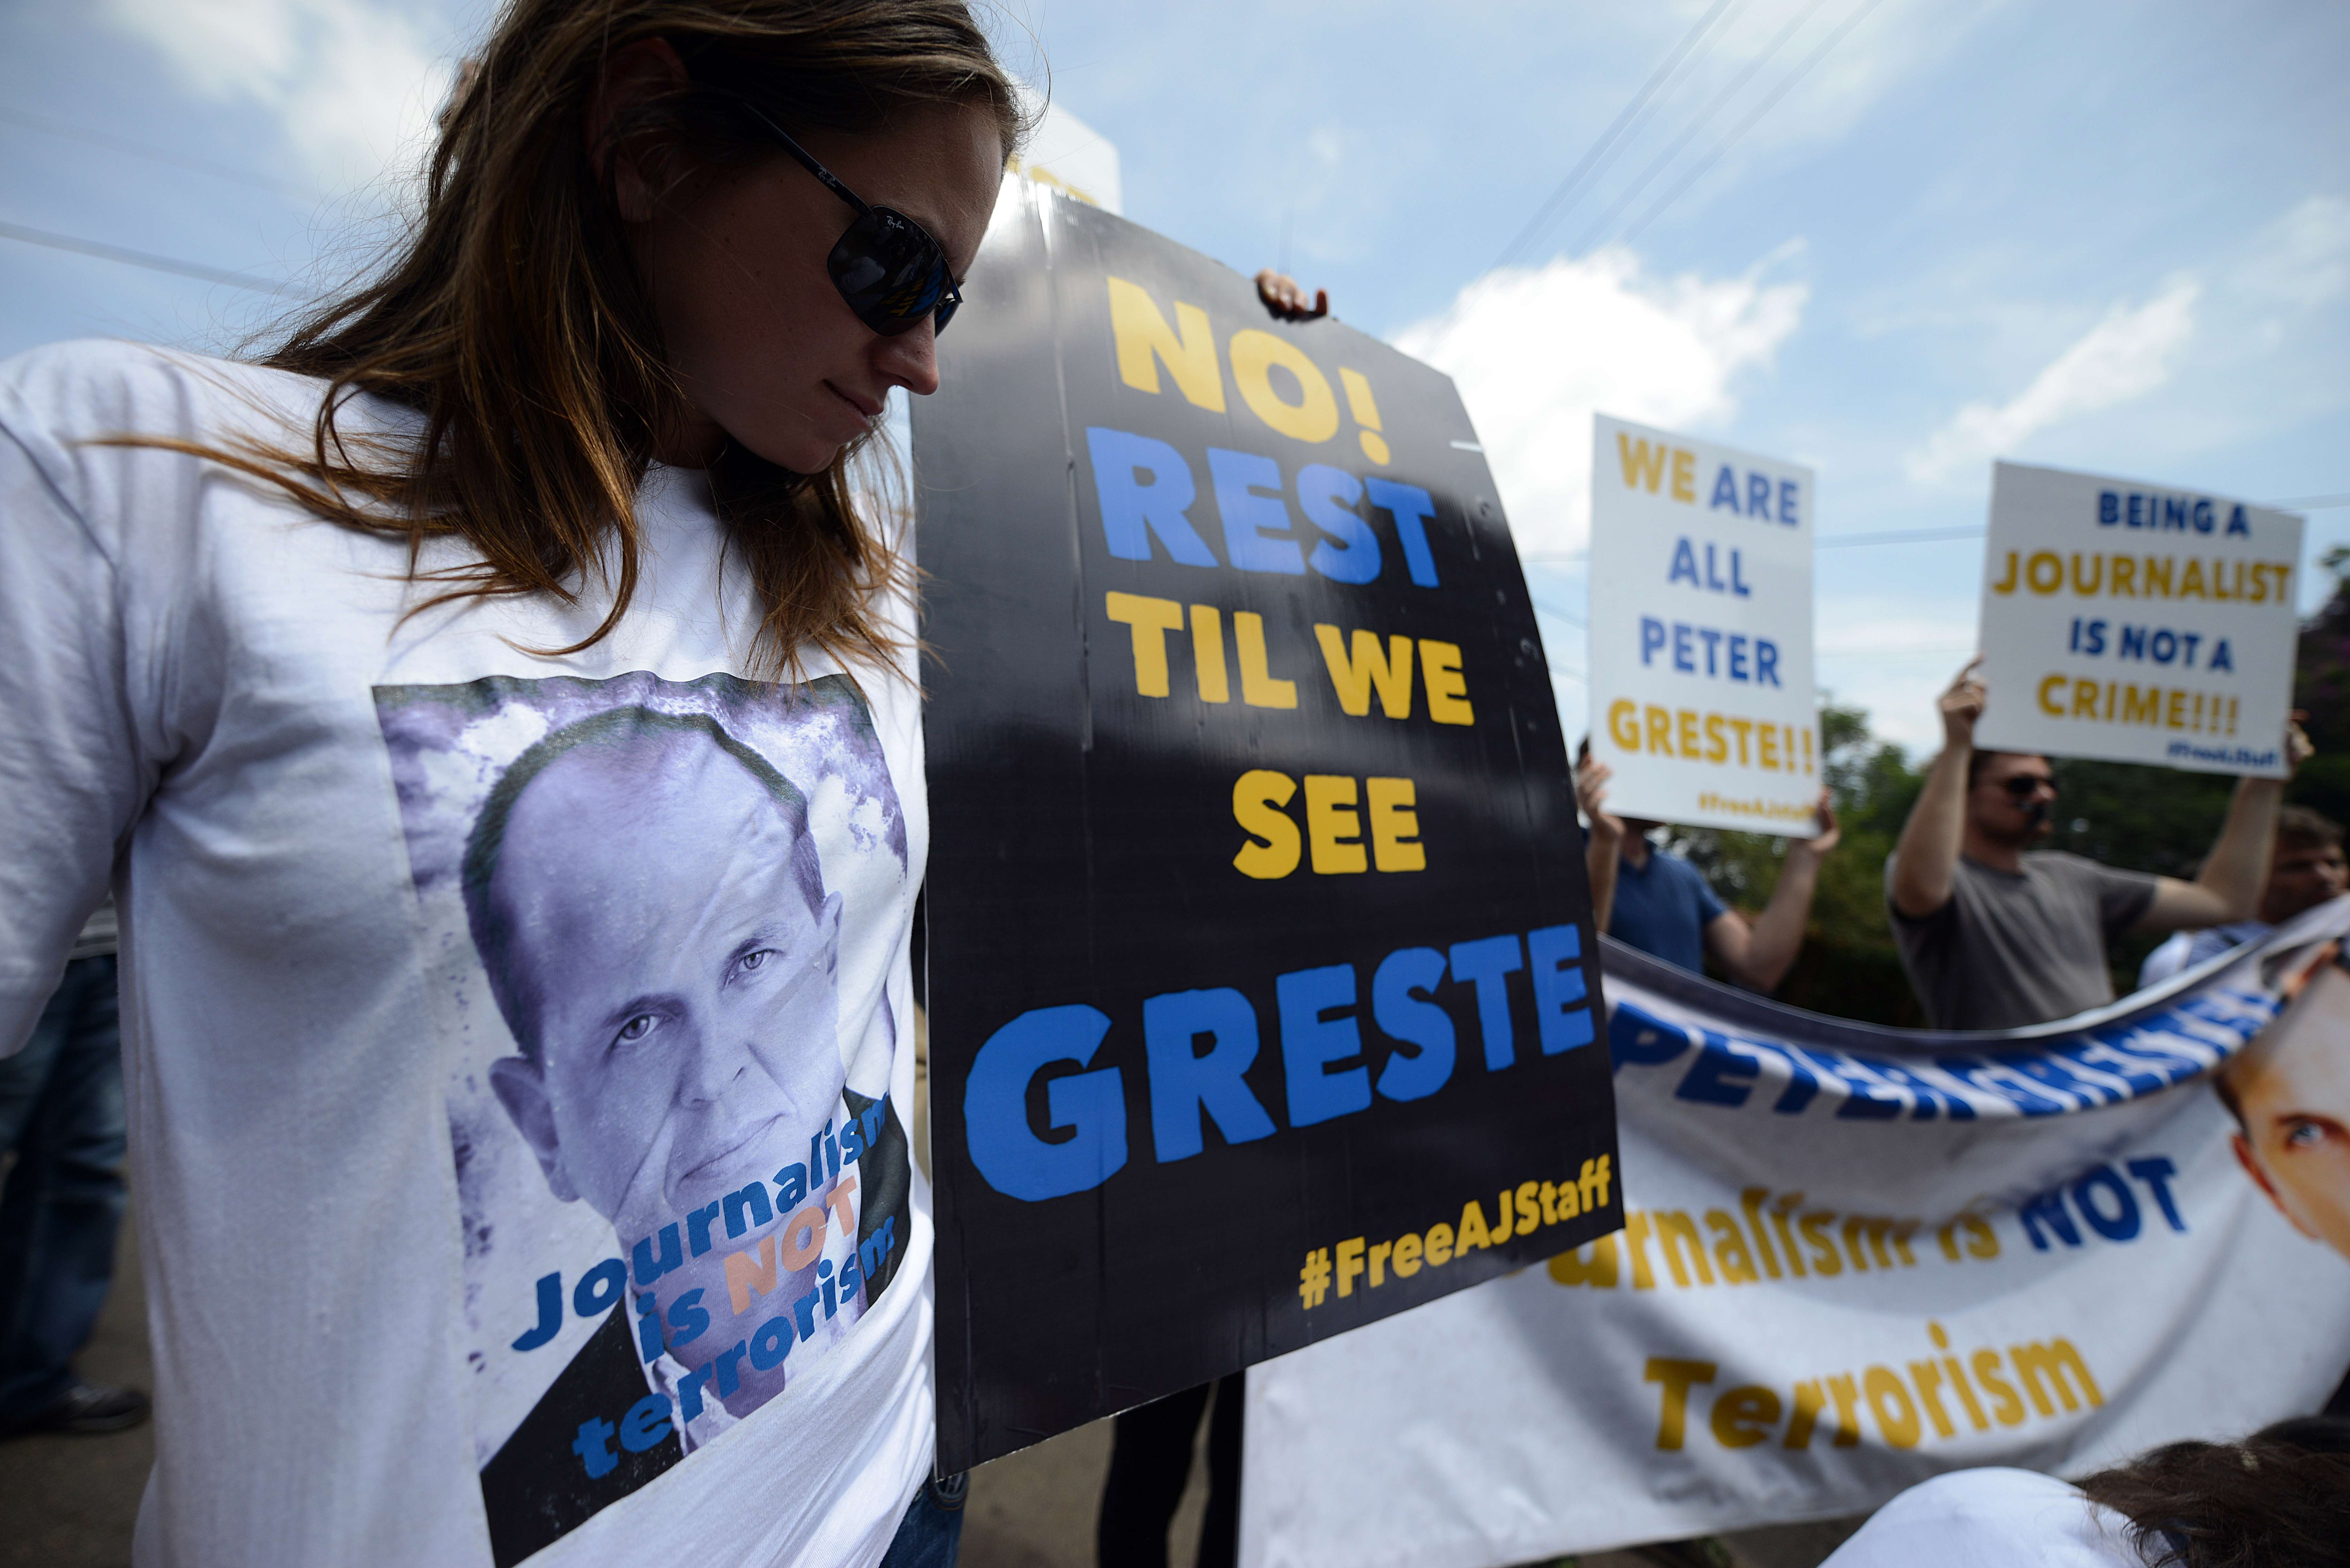 Foreign journalists march to the Egyptian Embassy in Nairobi as they wear t-shirts bearing a picture of Peter Greste, an Australian journalist who was arrested and detained in Cairo while on assignment for Qatar-based Al-Jazeera network, on December 29, 2013. Greste and two others journalists are accused of spreading lies harmful to state security and joining a terrorist organisation. (AFP PHOTO/SIMON MAINA)